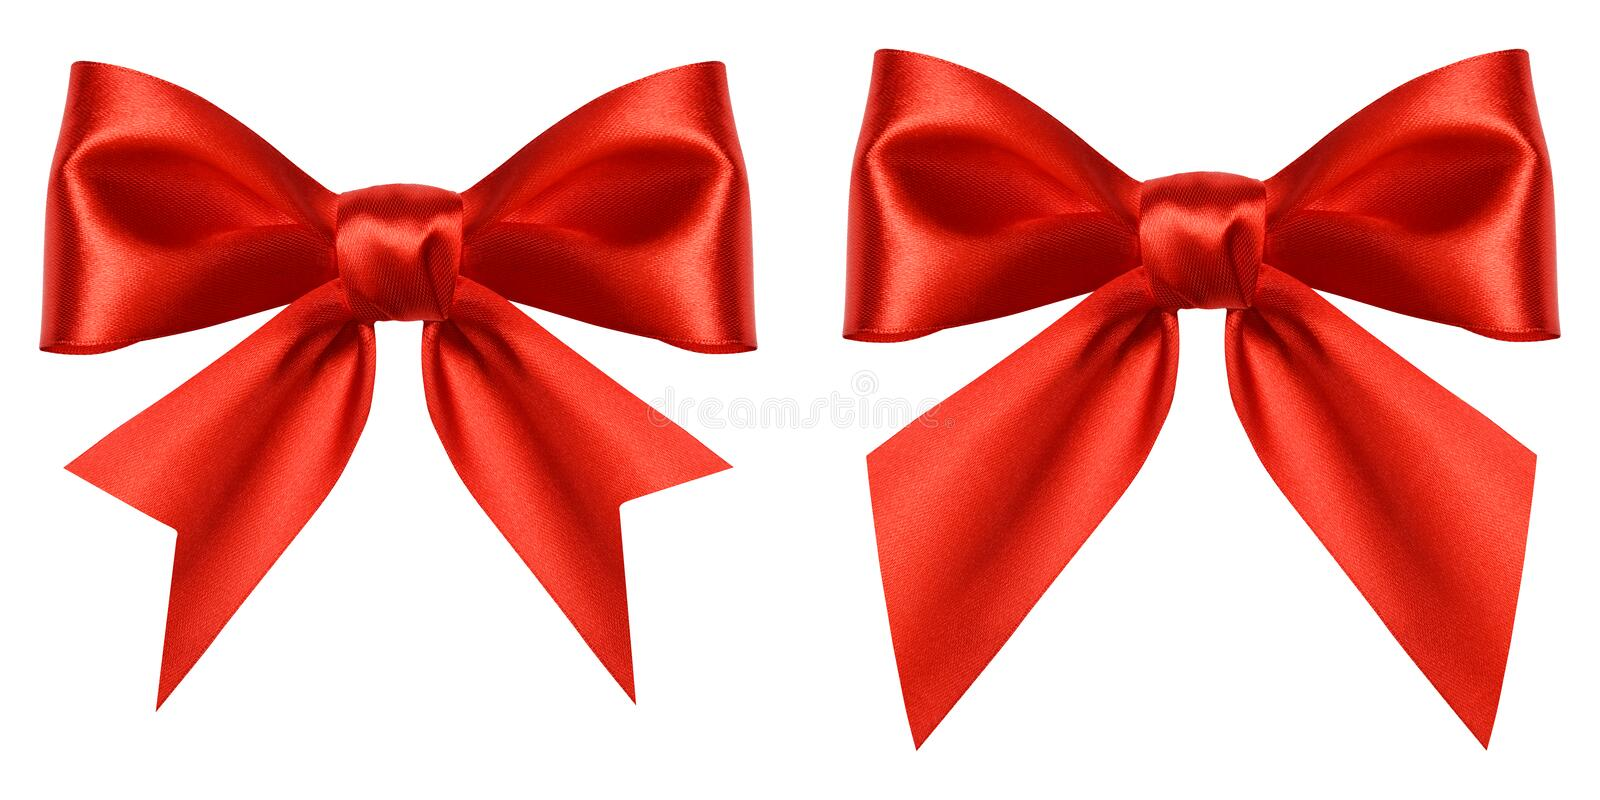 Red gift bow isolated on white background. Ribbon bow of shiny satin closeup. Holiday Christmas decoration as design. Element stock photography